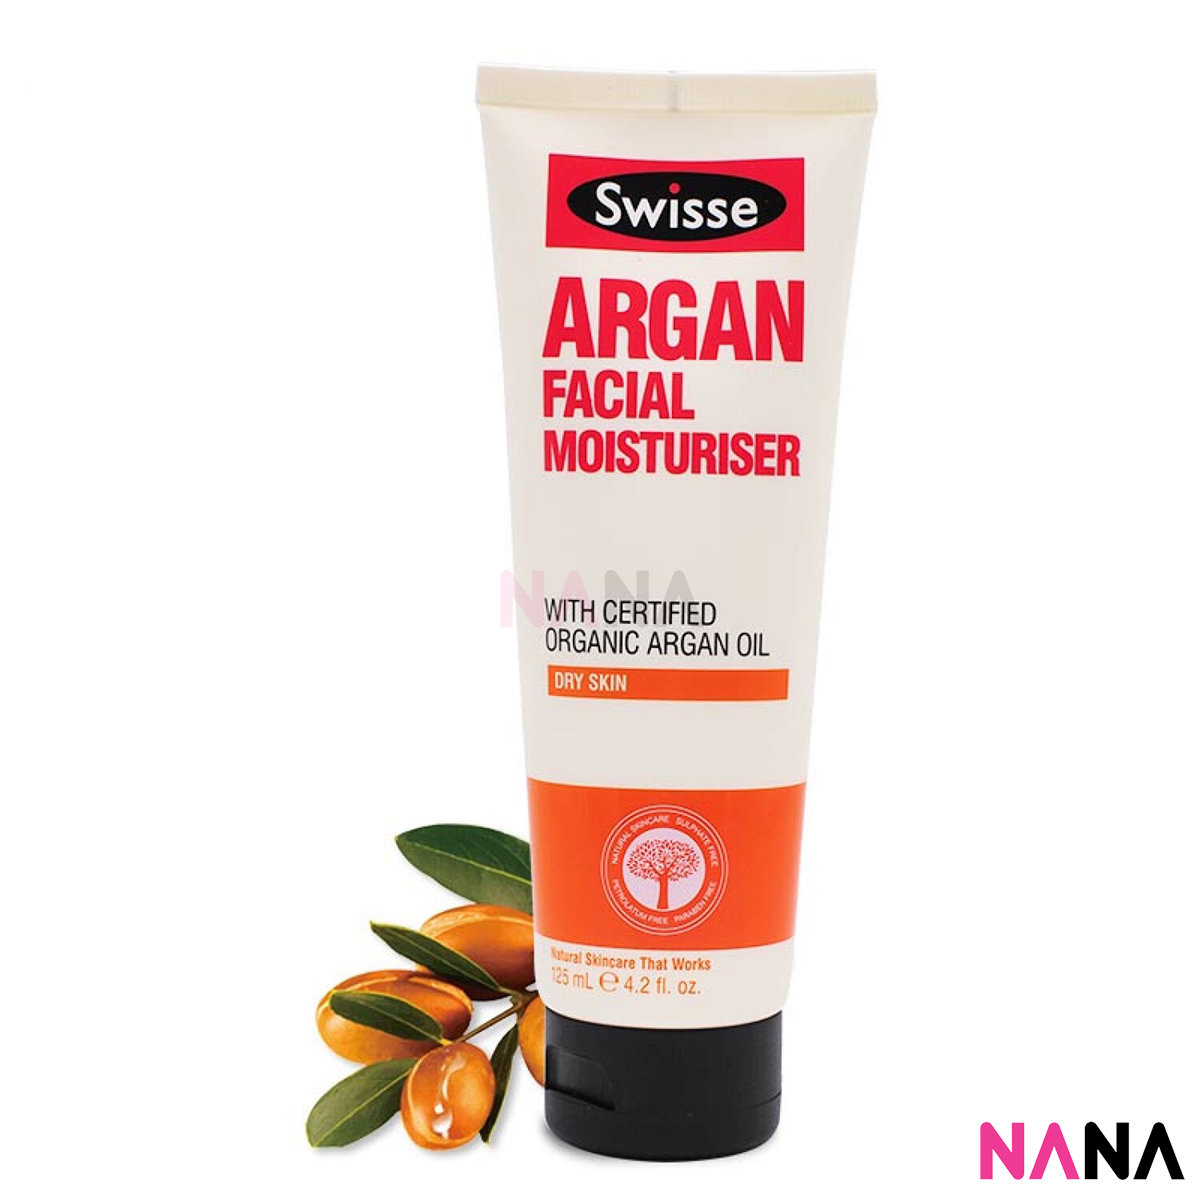 Argan Facial Moisturizing 125ml